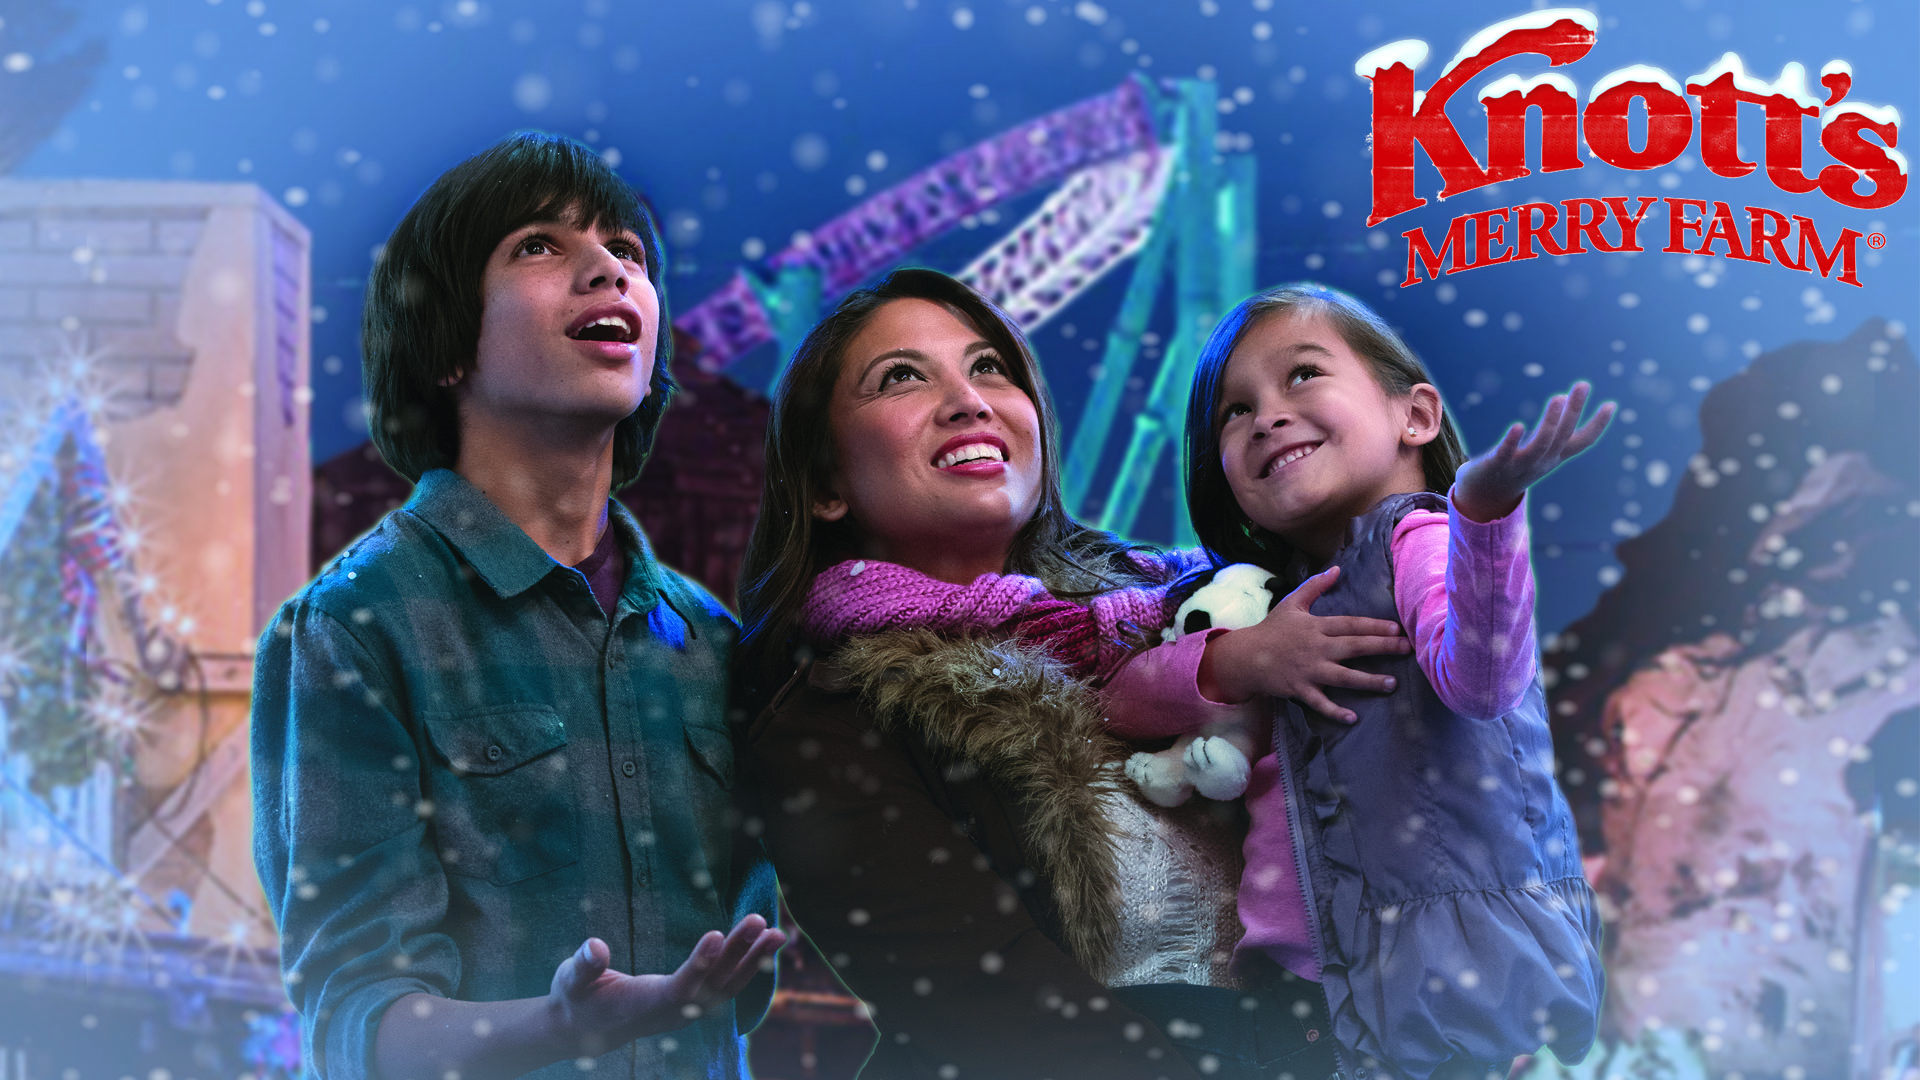 Listen for your chance at tickets to Knott's Merry Farm!